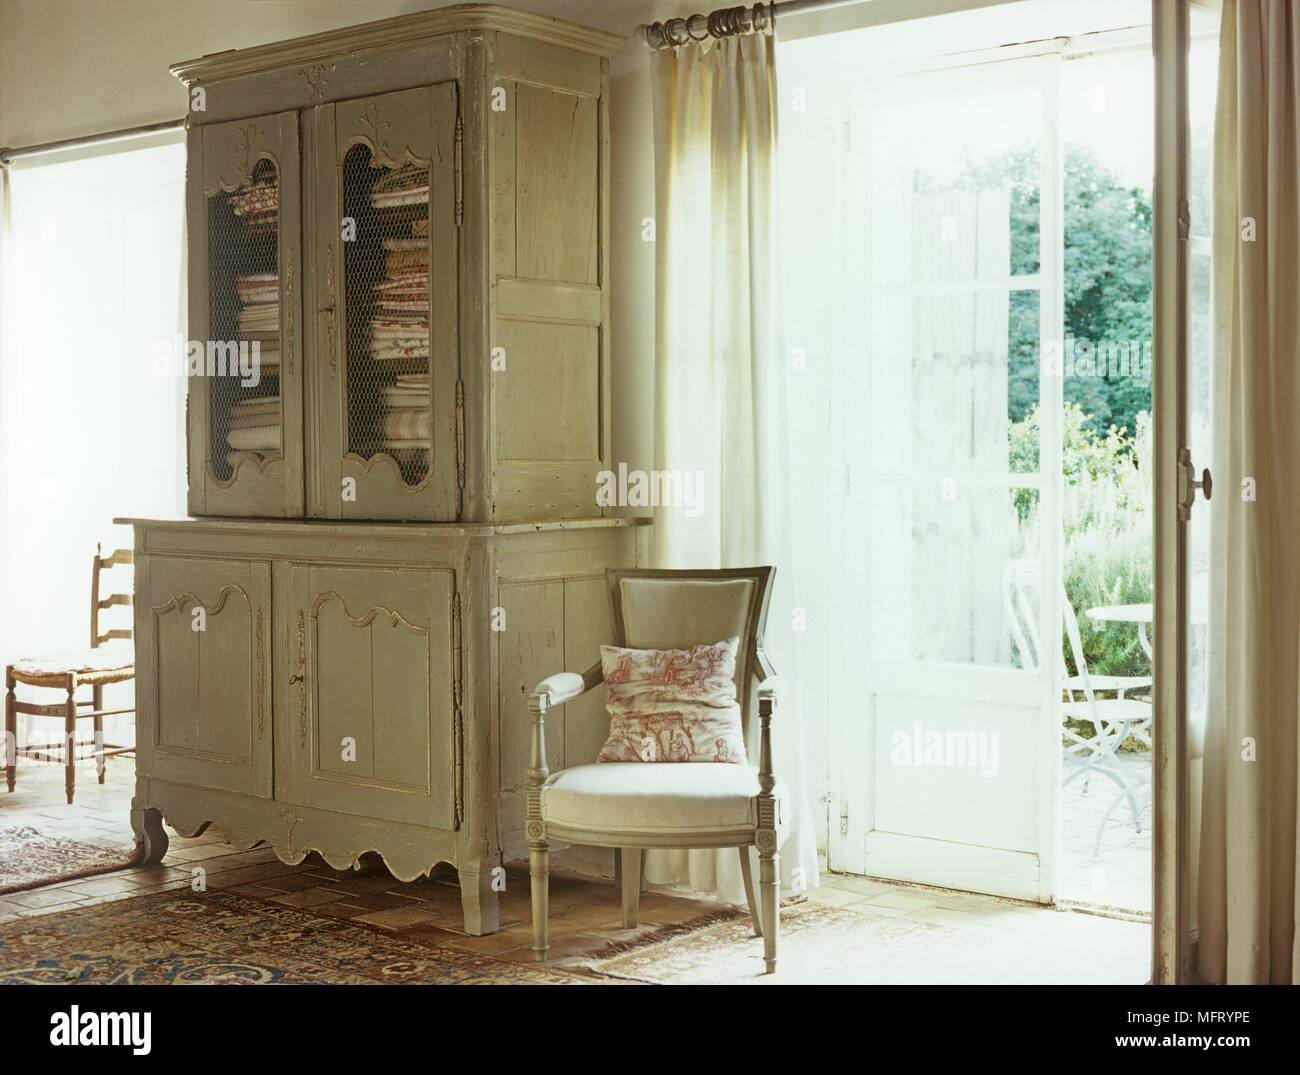 French Doors Open Stock Photos French Doors Open Stock Images Alamy